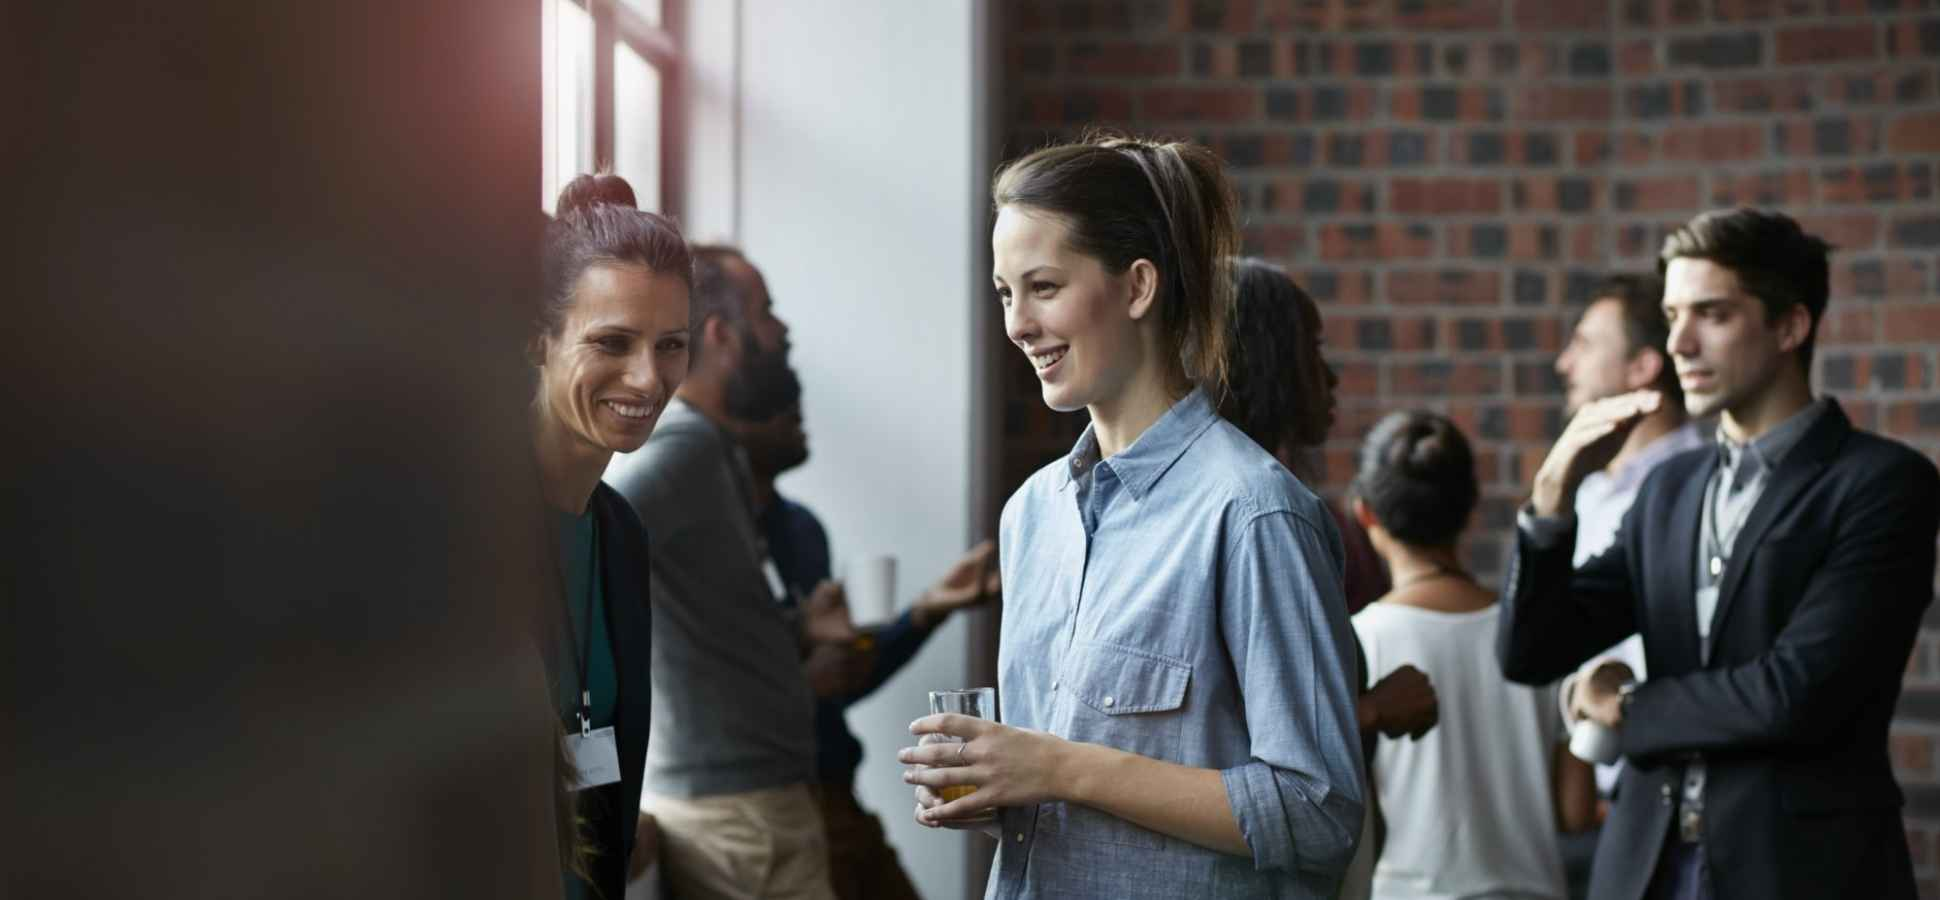 This Single Networking Trick Will Break the Ice Every Time